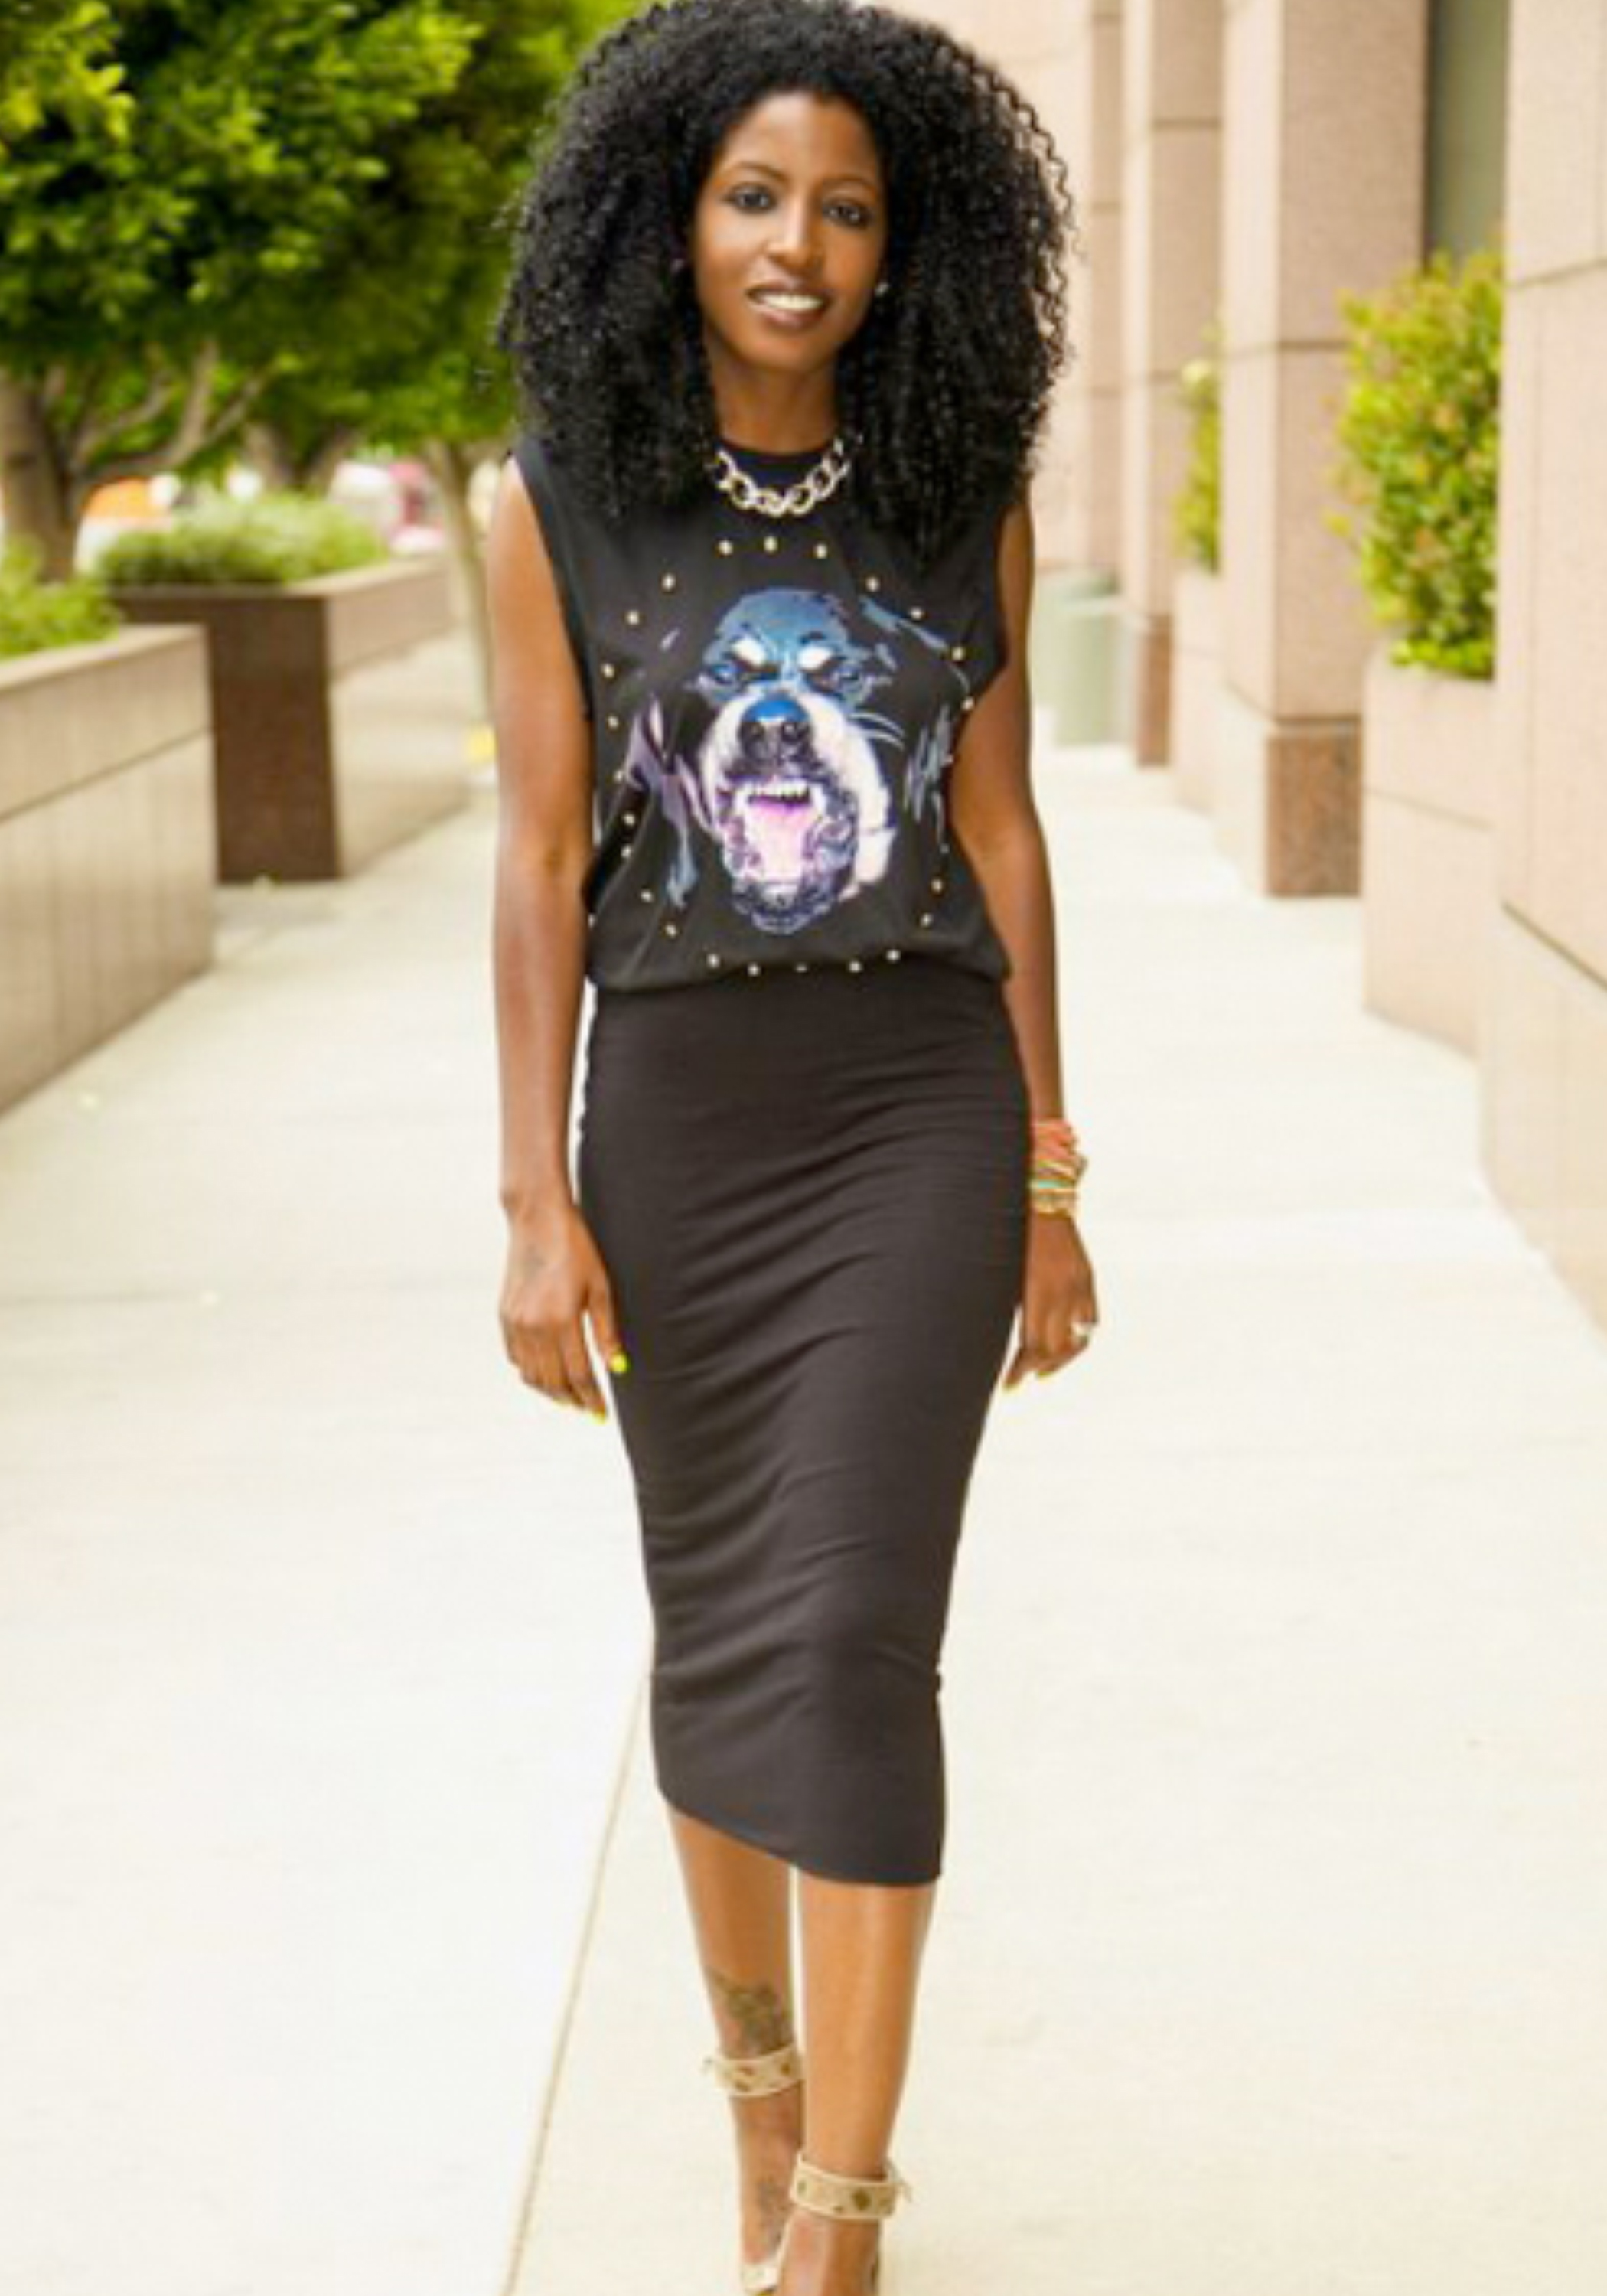 Black Midi Skirt + Givenchy Rottweiler Muscle Tee | https://thehautemommie.com/haute-style-midi-skirts-tee-shirts/